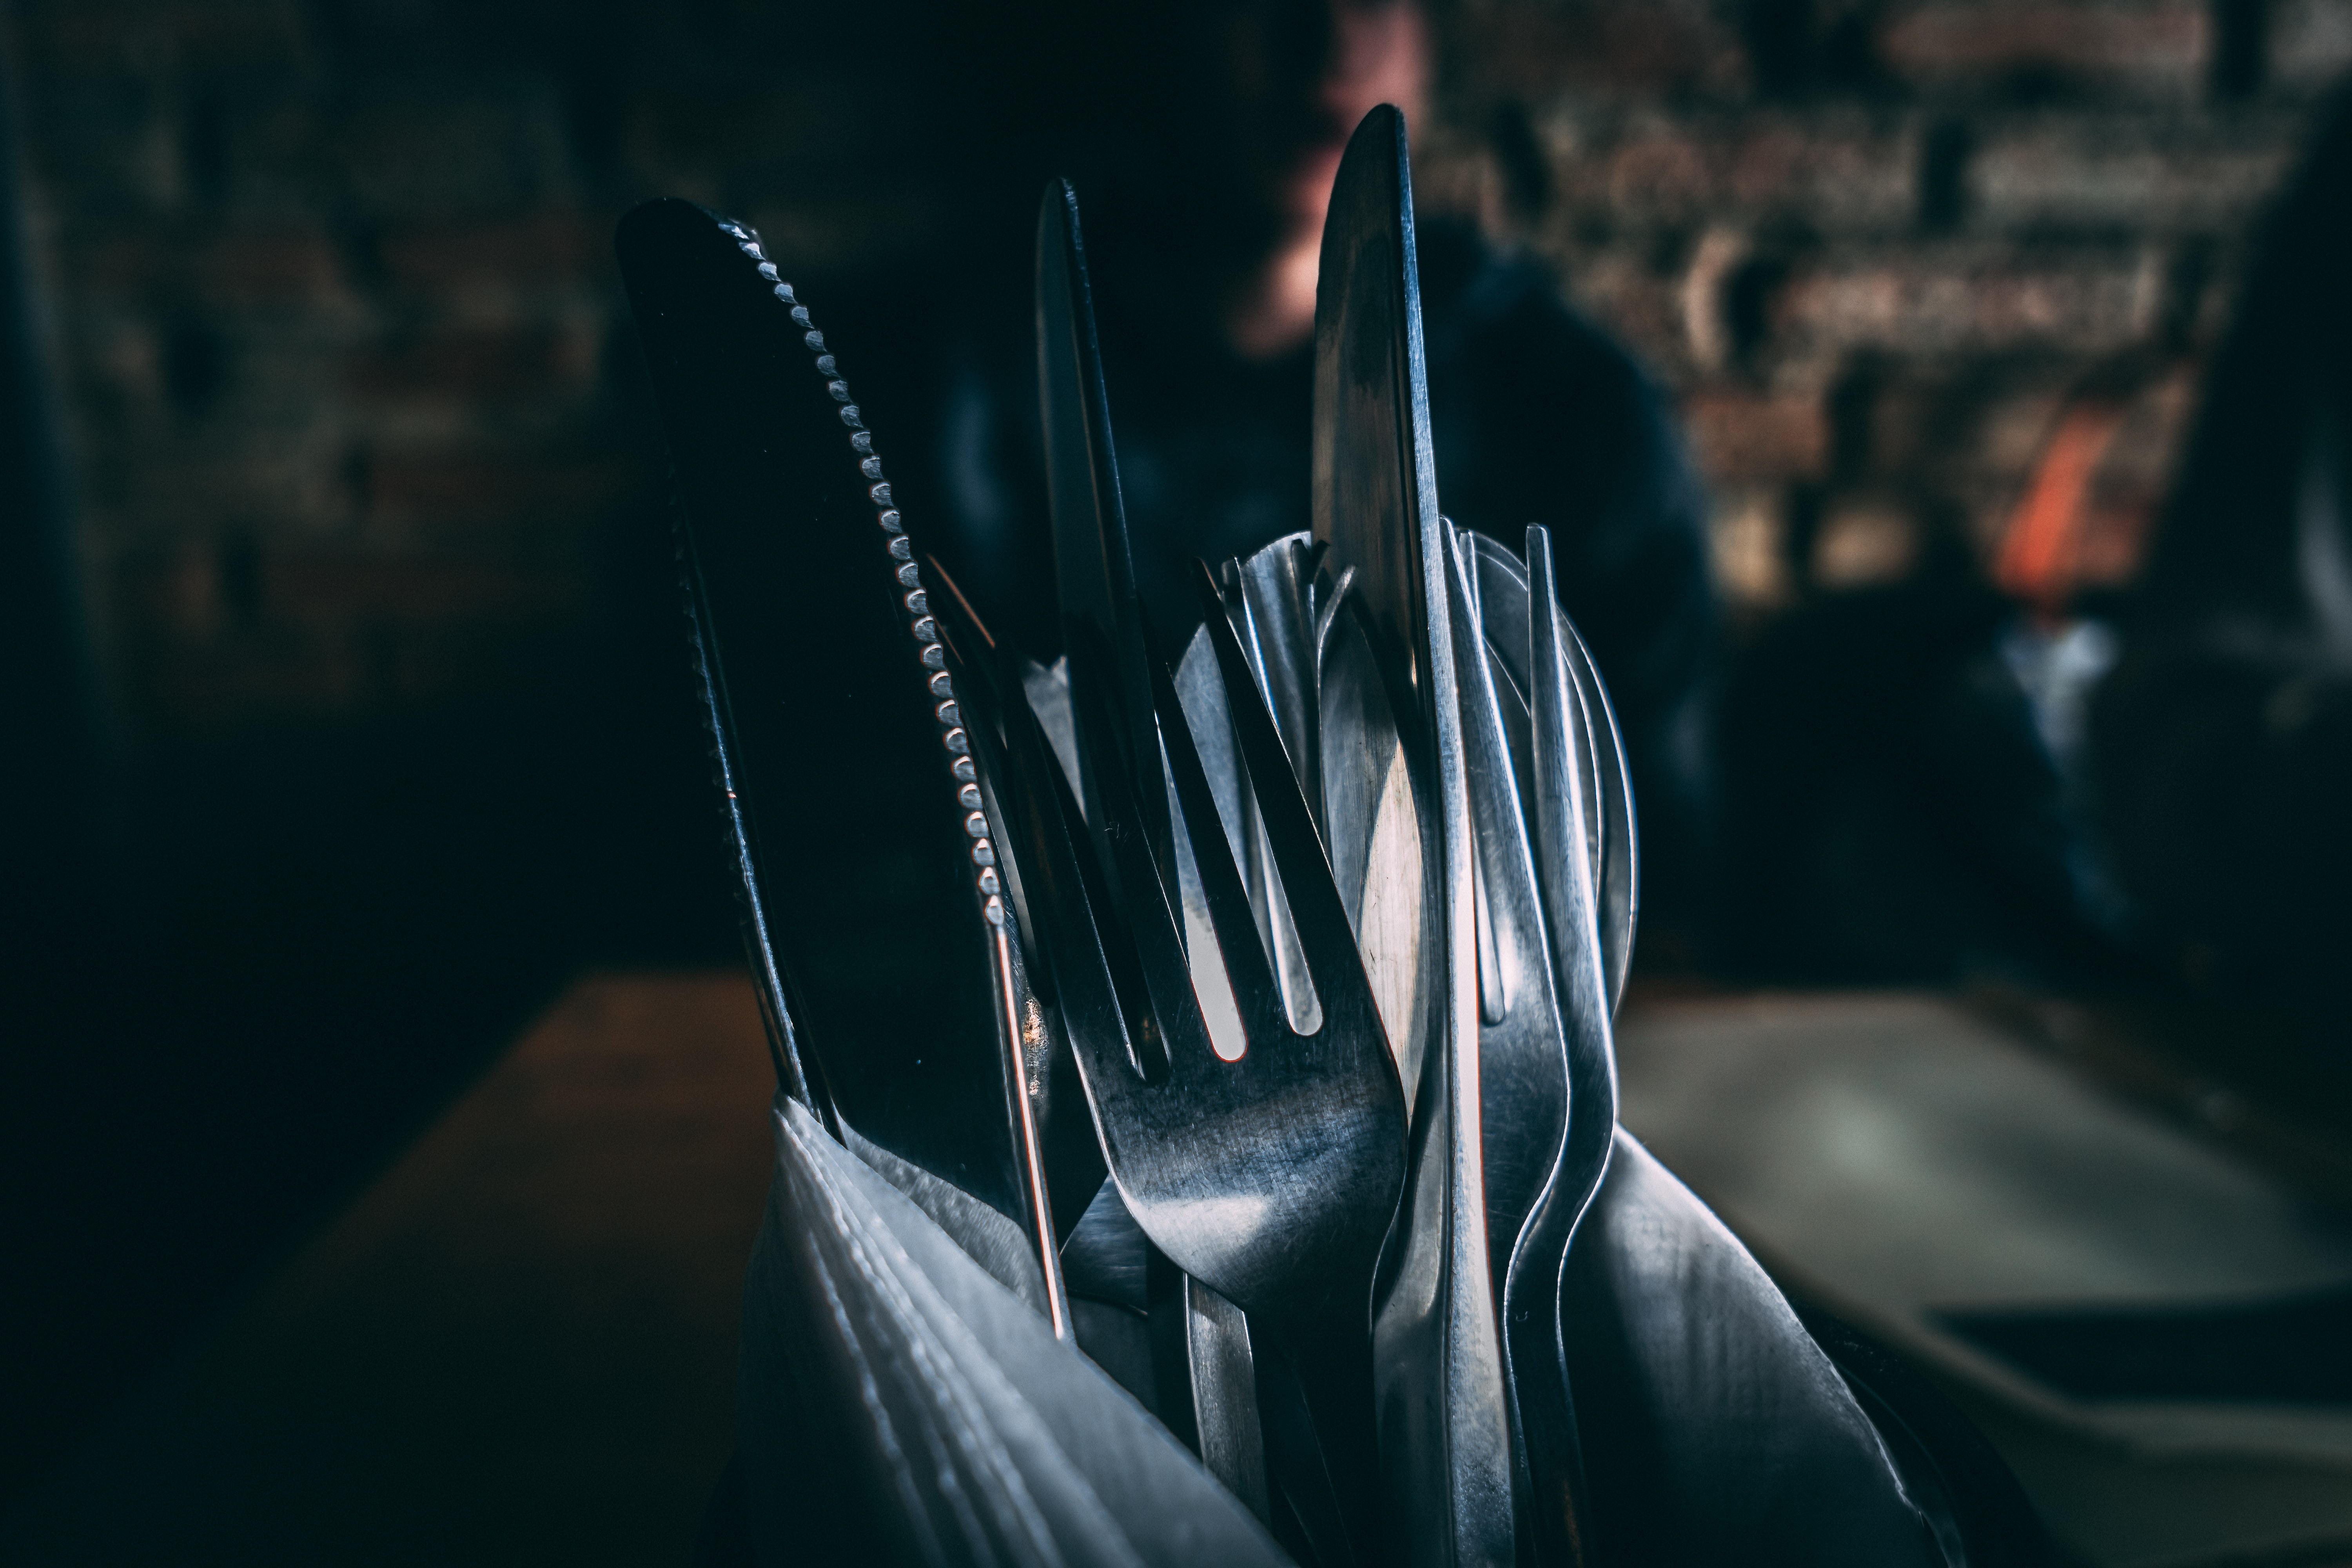 focus photography of silver utensils on container